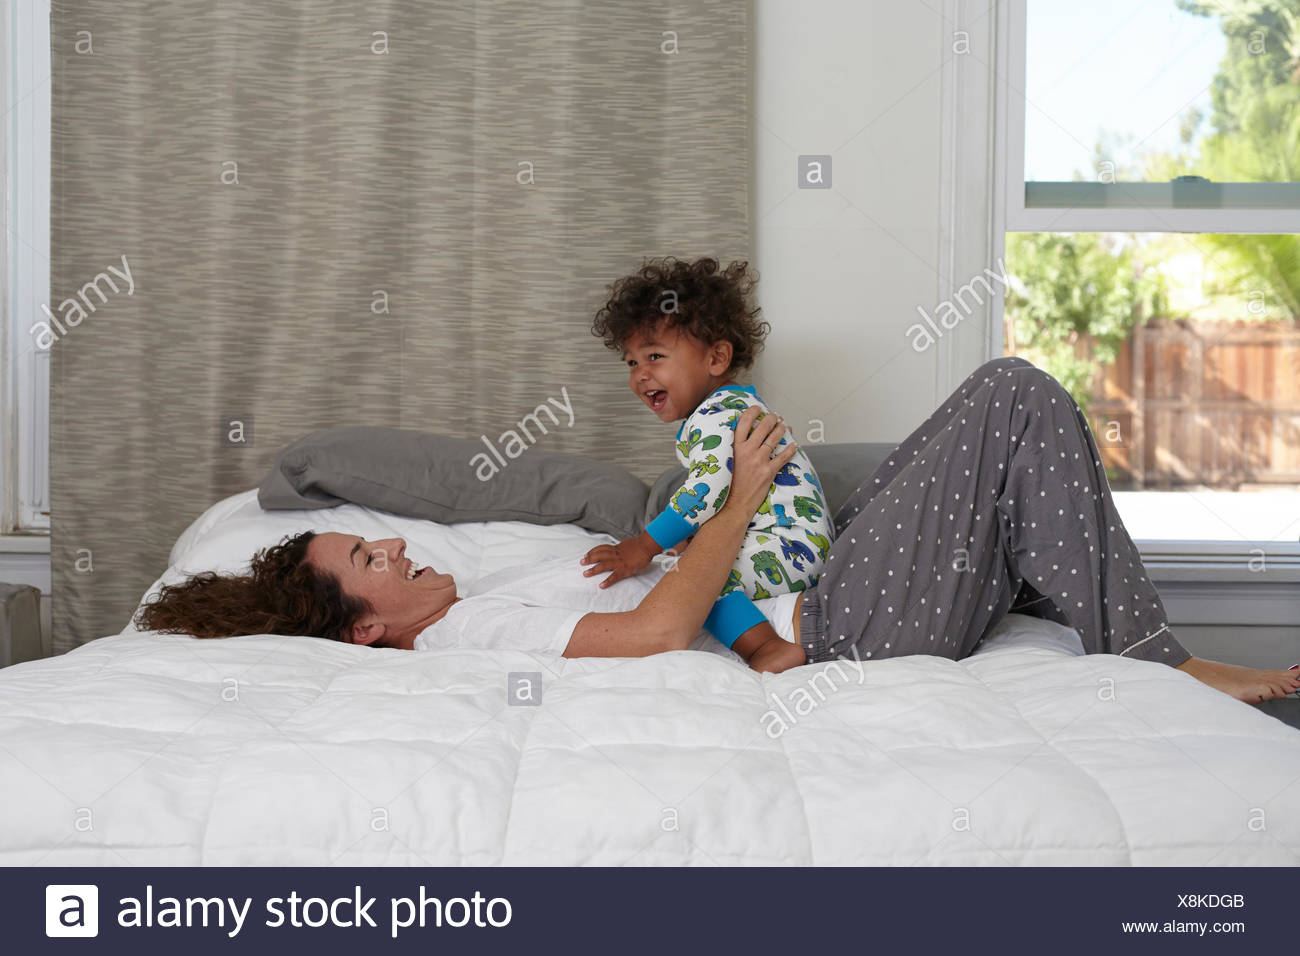 Male toddler sitting on top of mother on bed - Stock Image